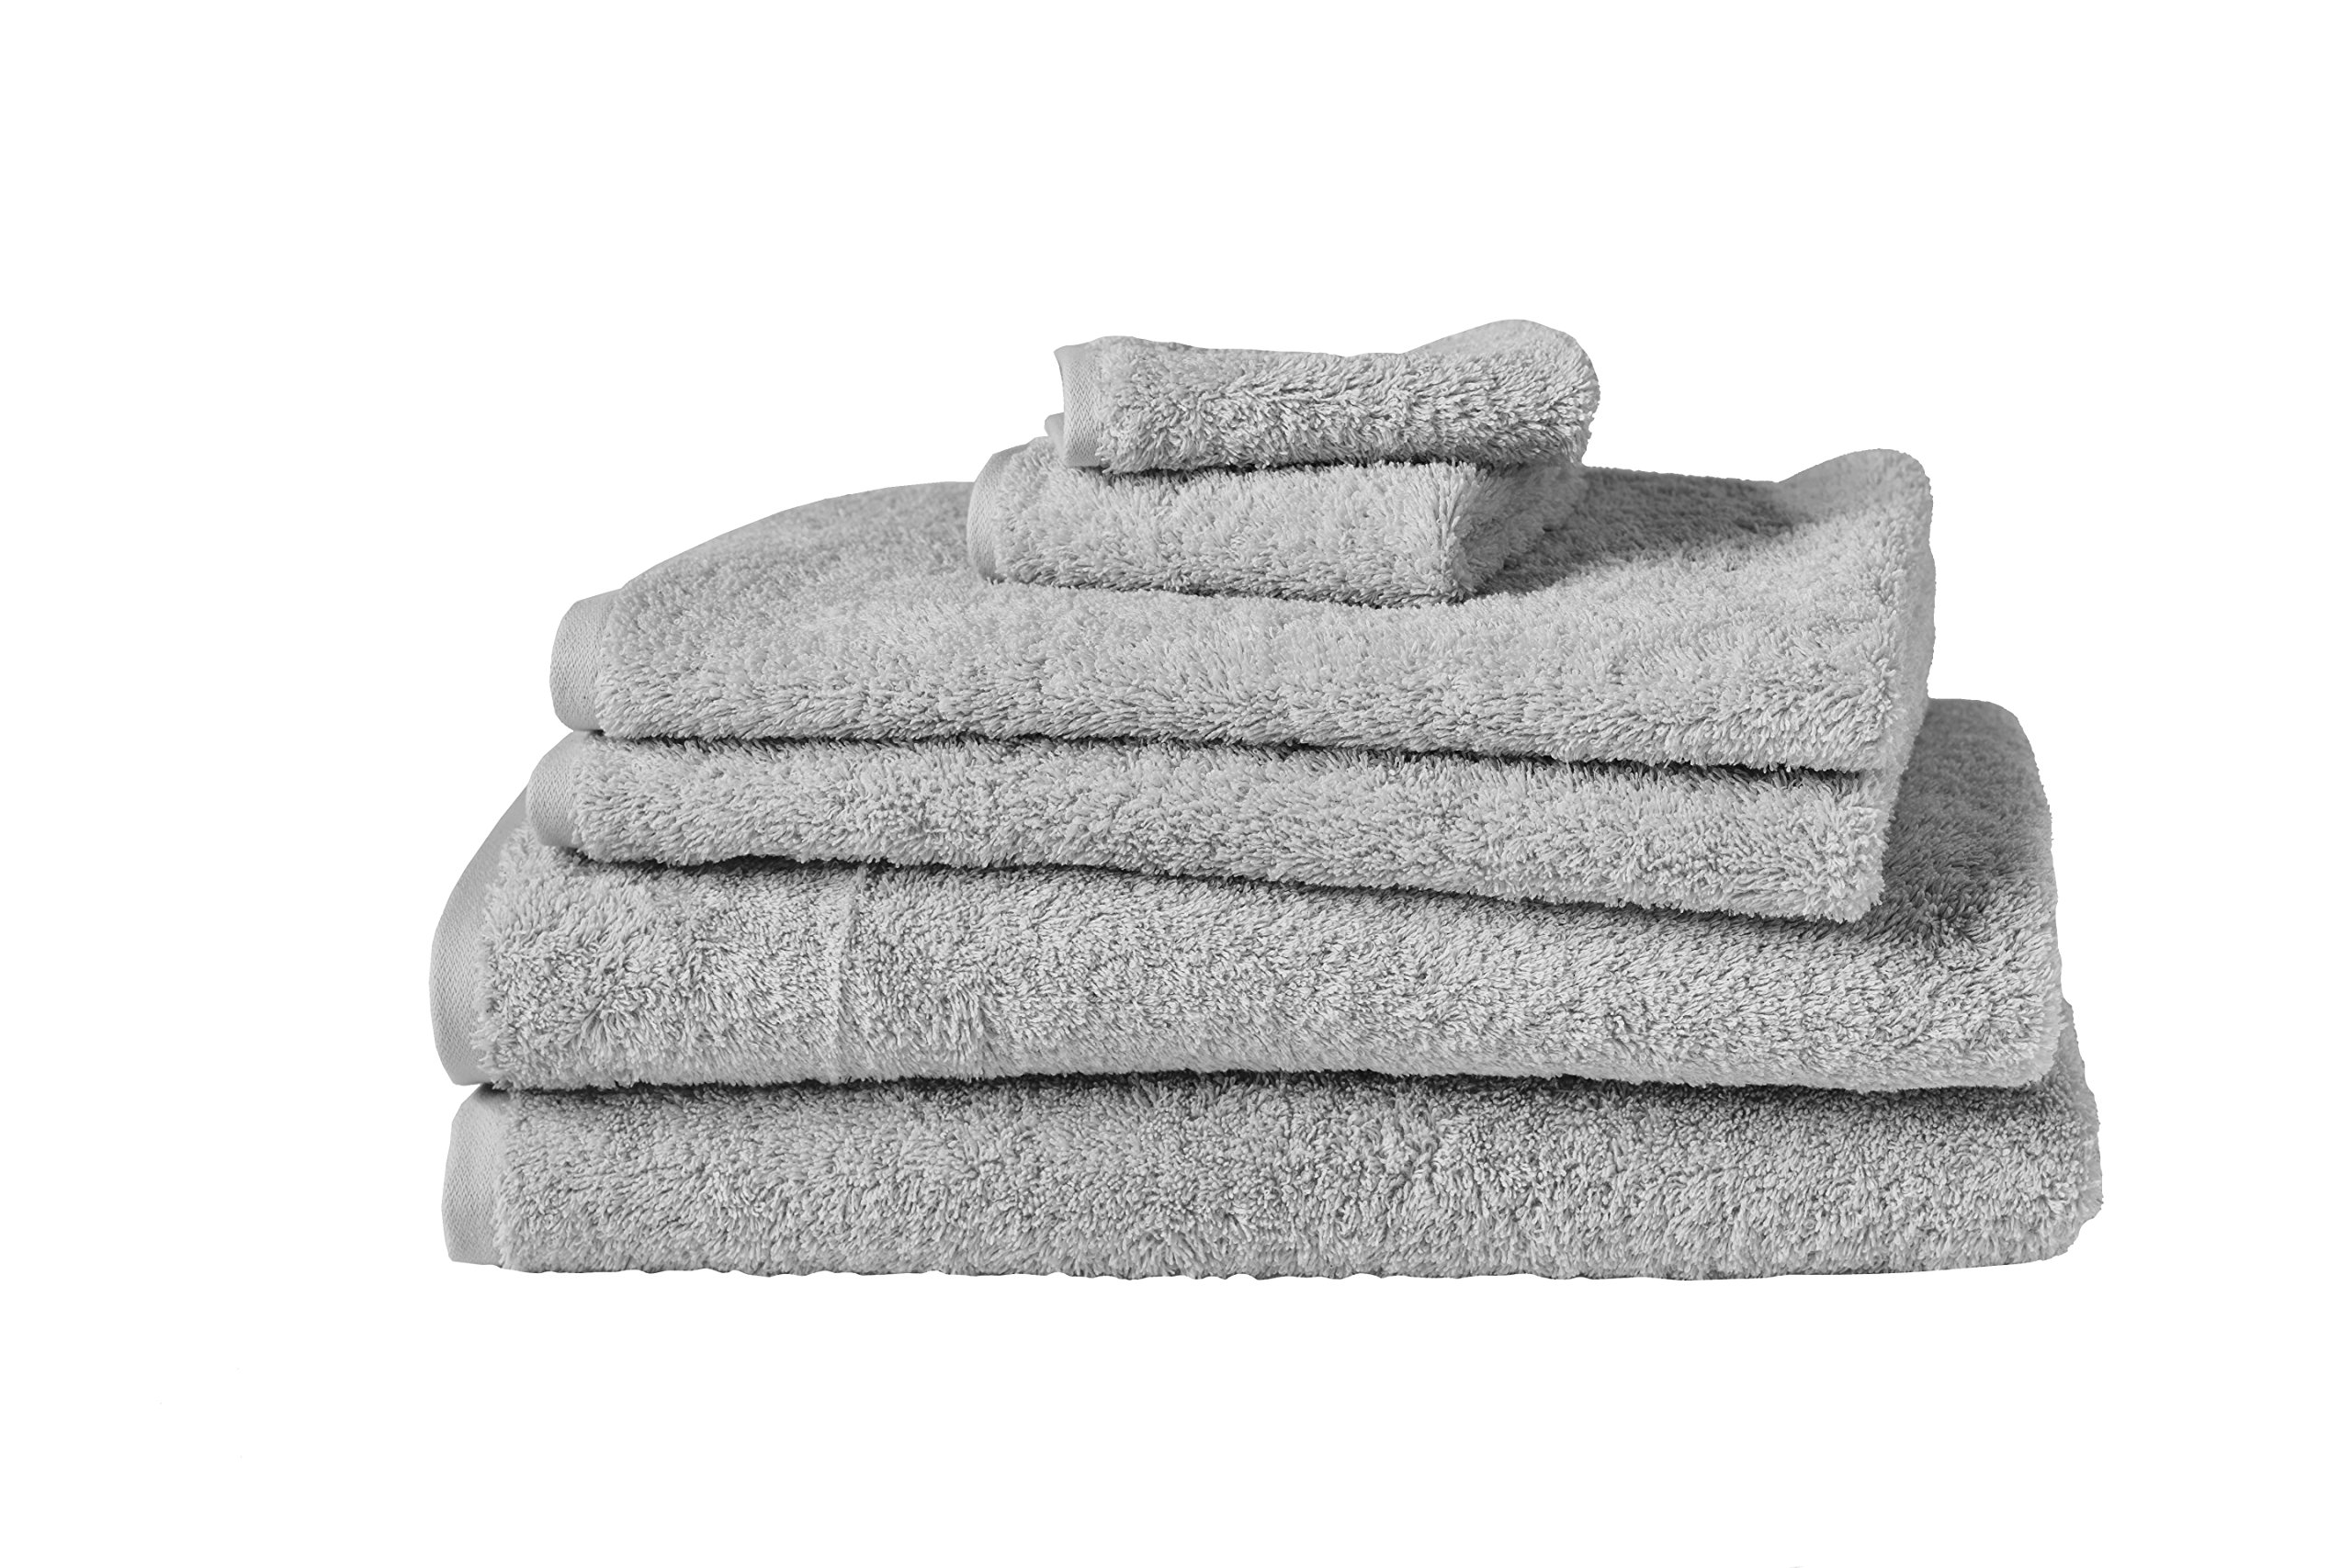 Coyuchi 1020314 6 Piece Organic Cloud Loom Towel Set, Fog by Coyuchi (Image #1)